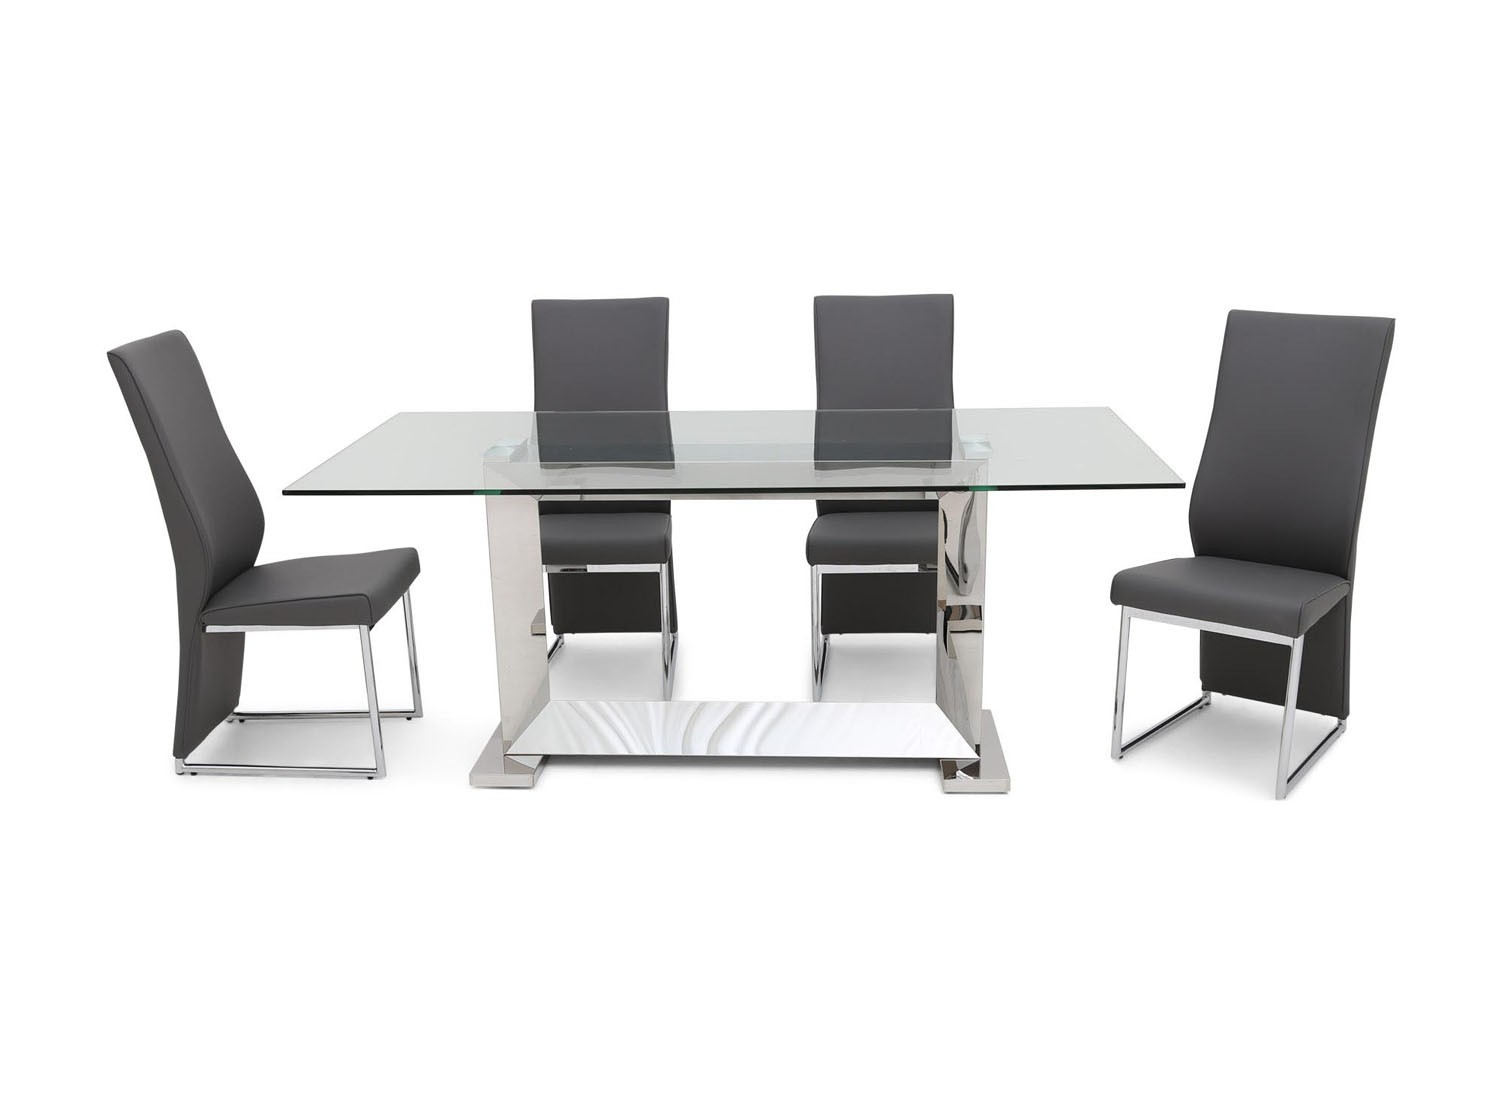 https://www.firstfurniture.co.uk/pub/media/catalog/product/d/o/donatella_dining_table_remo_chairs_grey_1__2.jpg